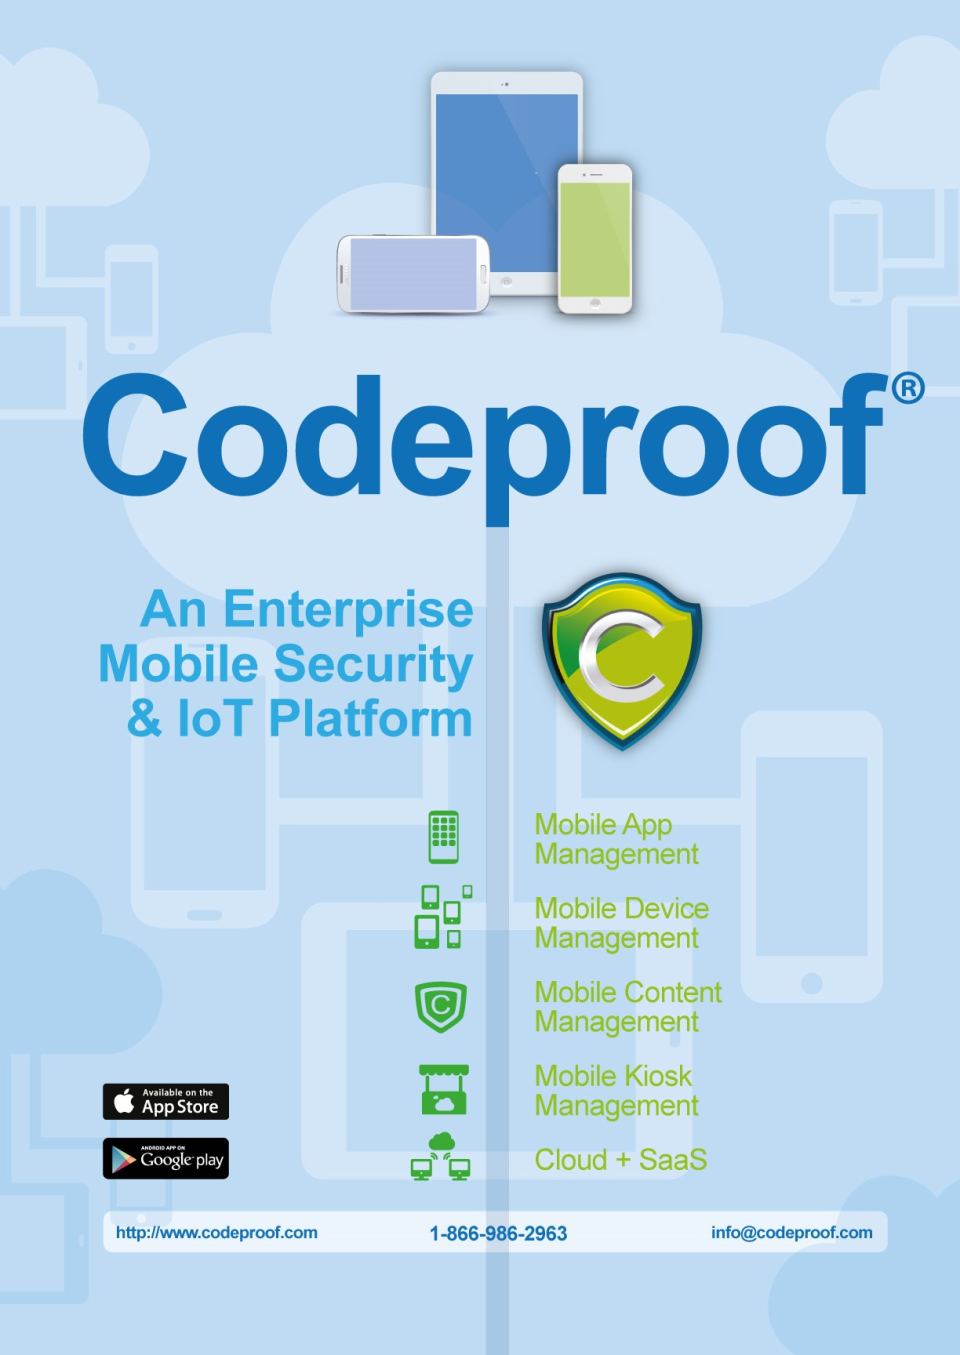 Codeproof Reviews and Pricing - 2019